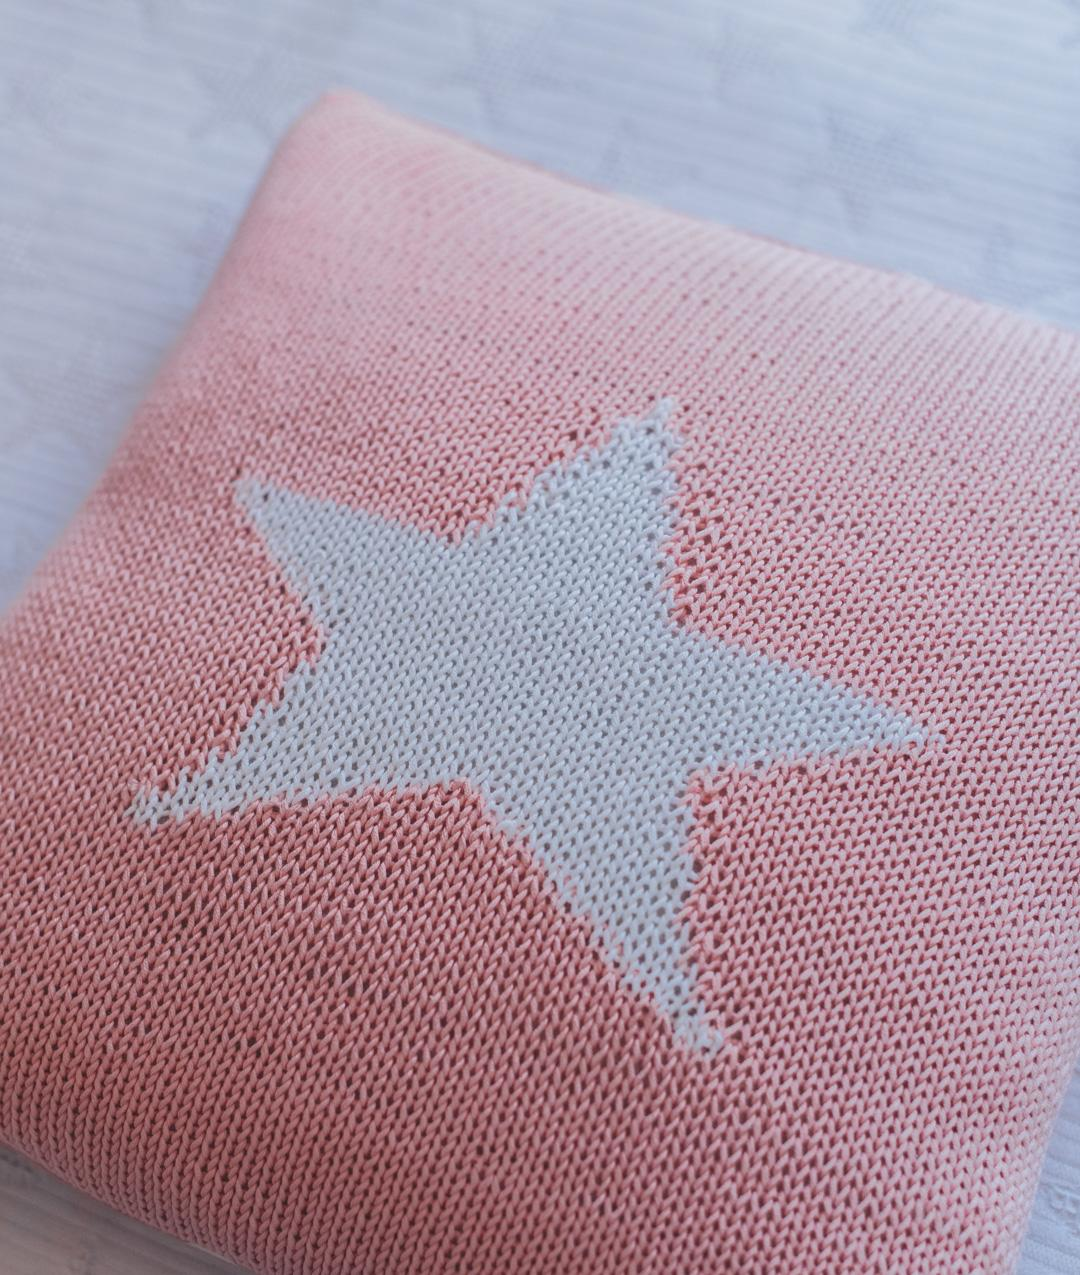 Casa - CotoneCasa - Cotone - MY LITTLE STAR CUSHION - 1